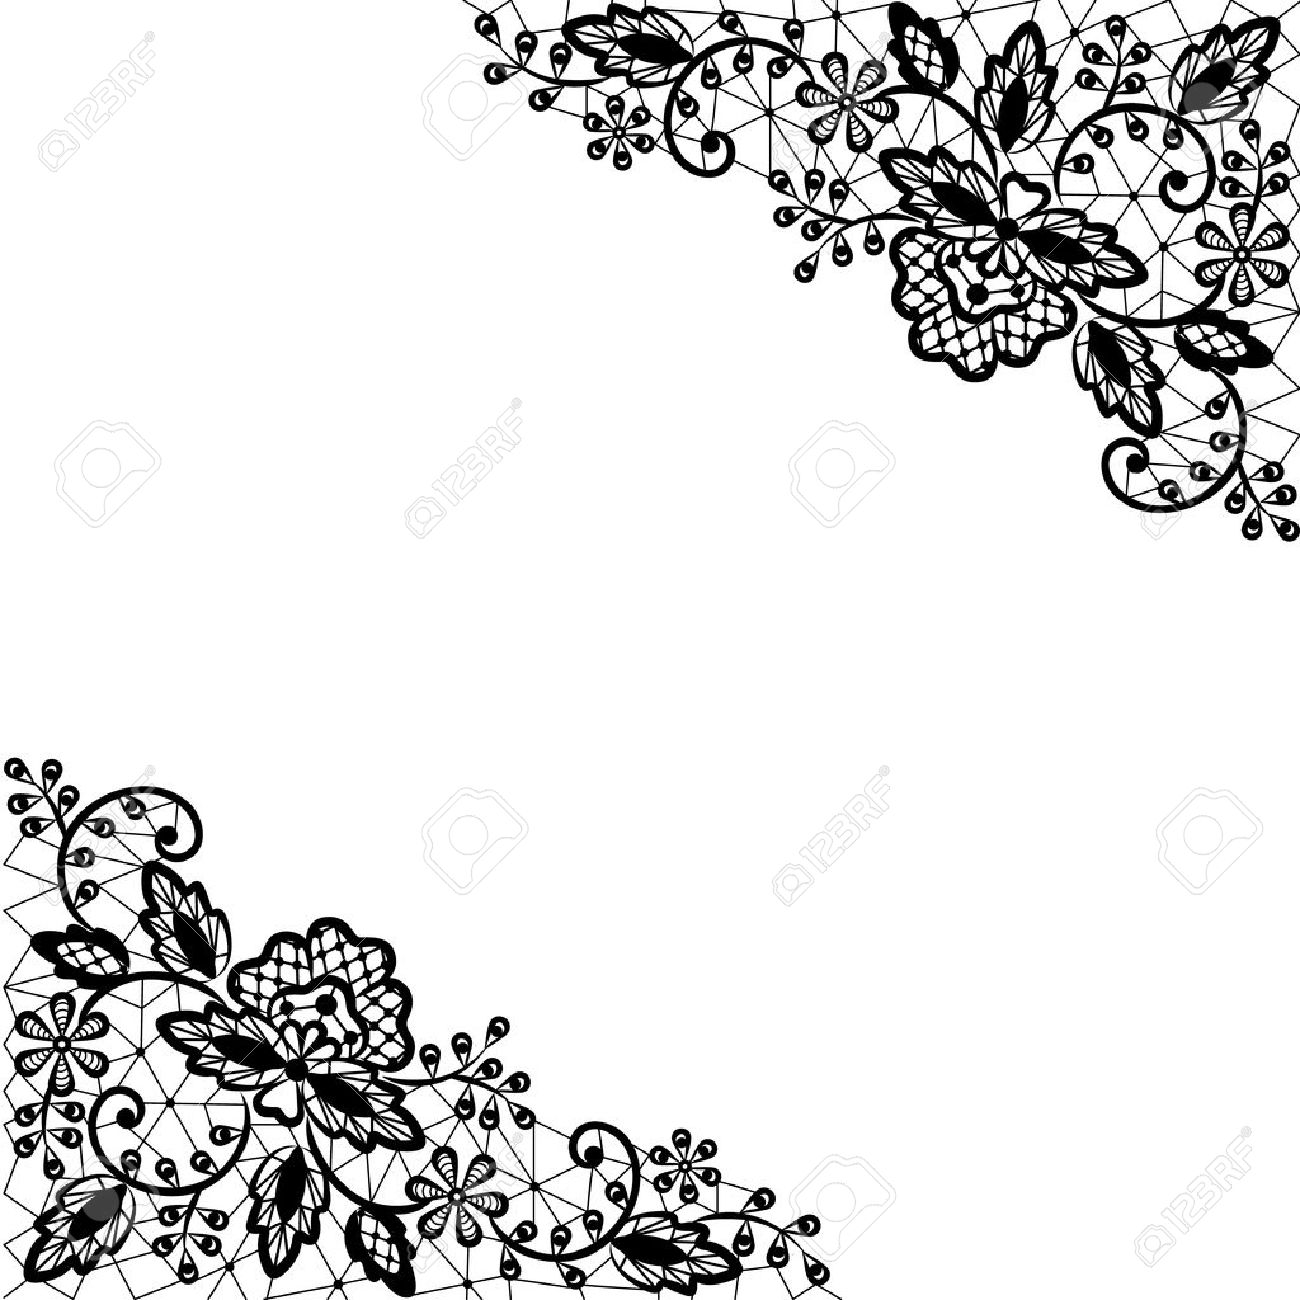 Invitation, Wedding Or Greeting Card With Lace Border Royalty Free ...